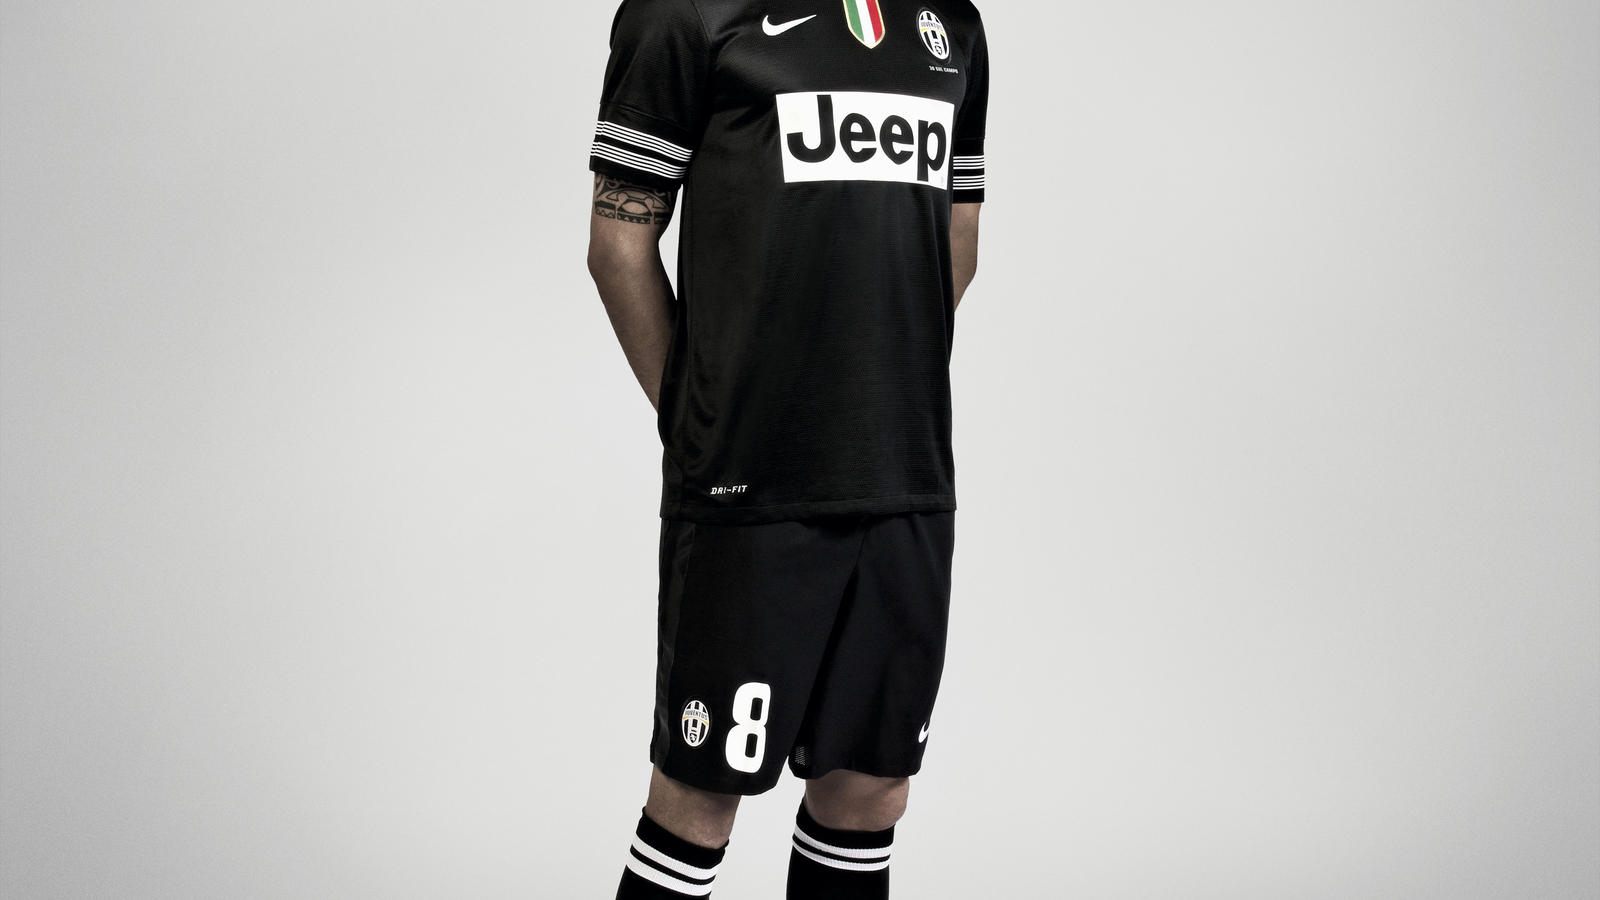 huge selection of 9ca76 2b131 Nike Football Unveils Juventus Away Kit For Season 2012/13 ...